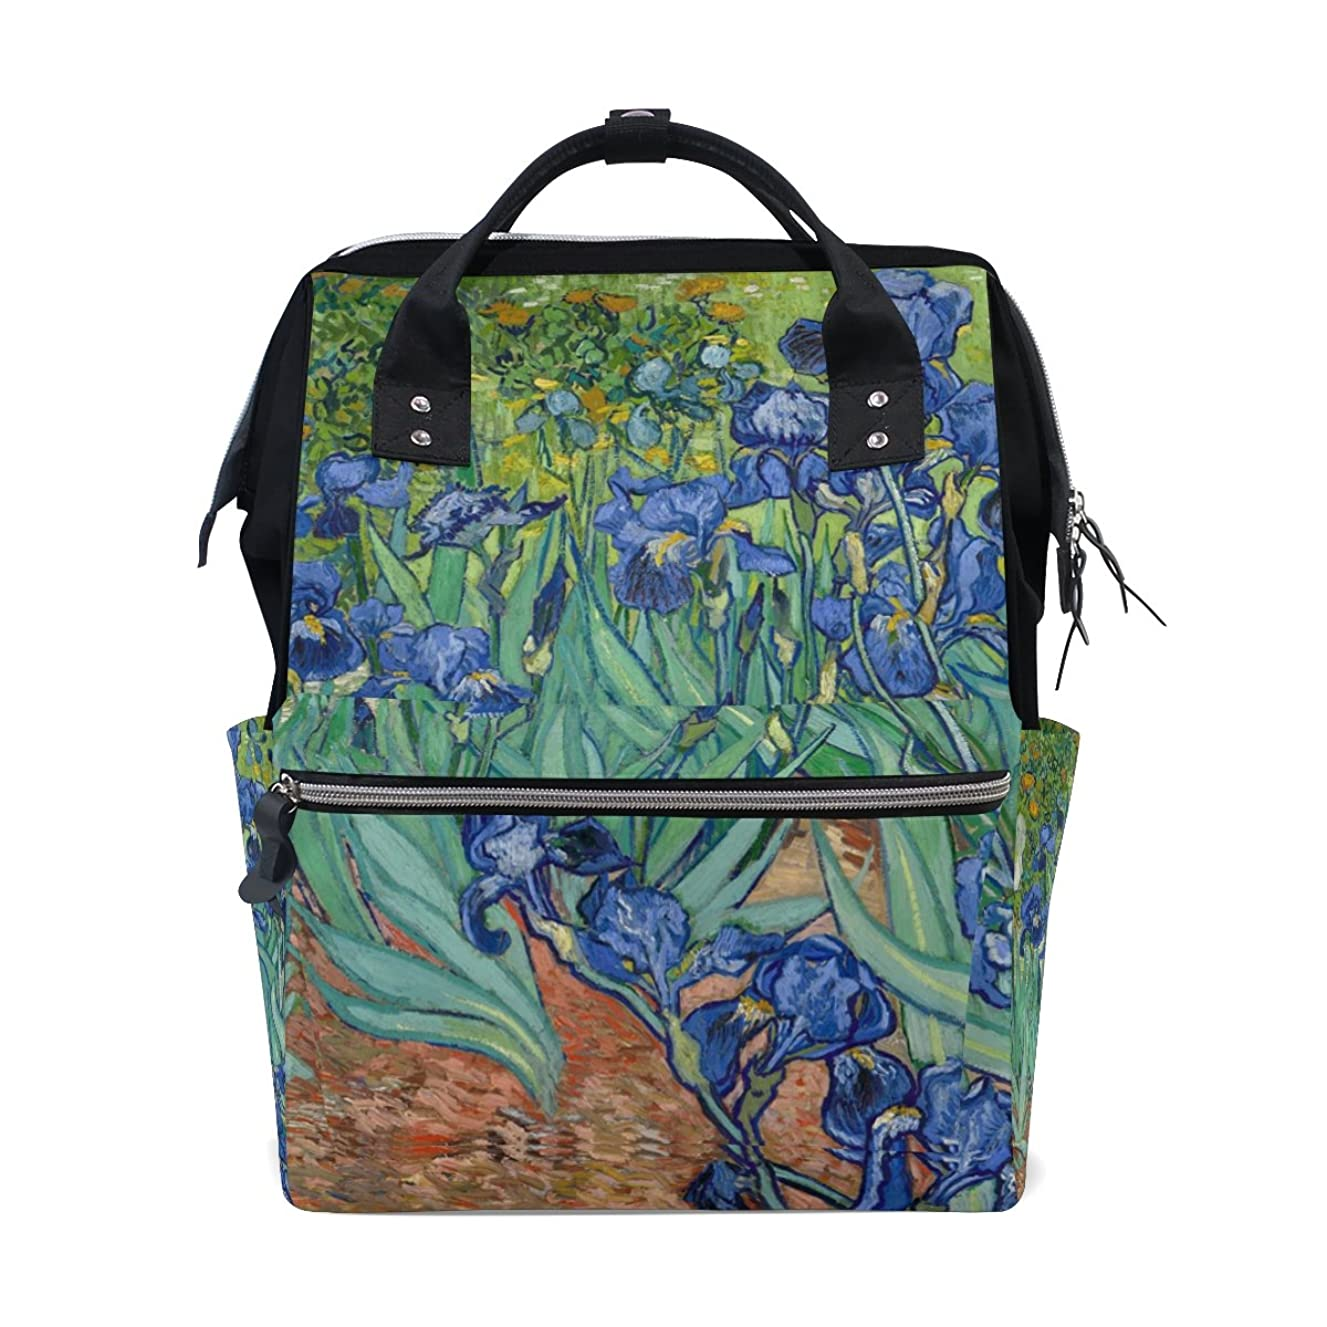 Backpack School Bag Van Gogh Irises Flower Canvas Travel Doctor Style Daypack